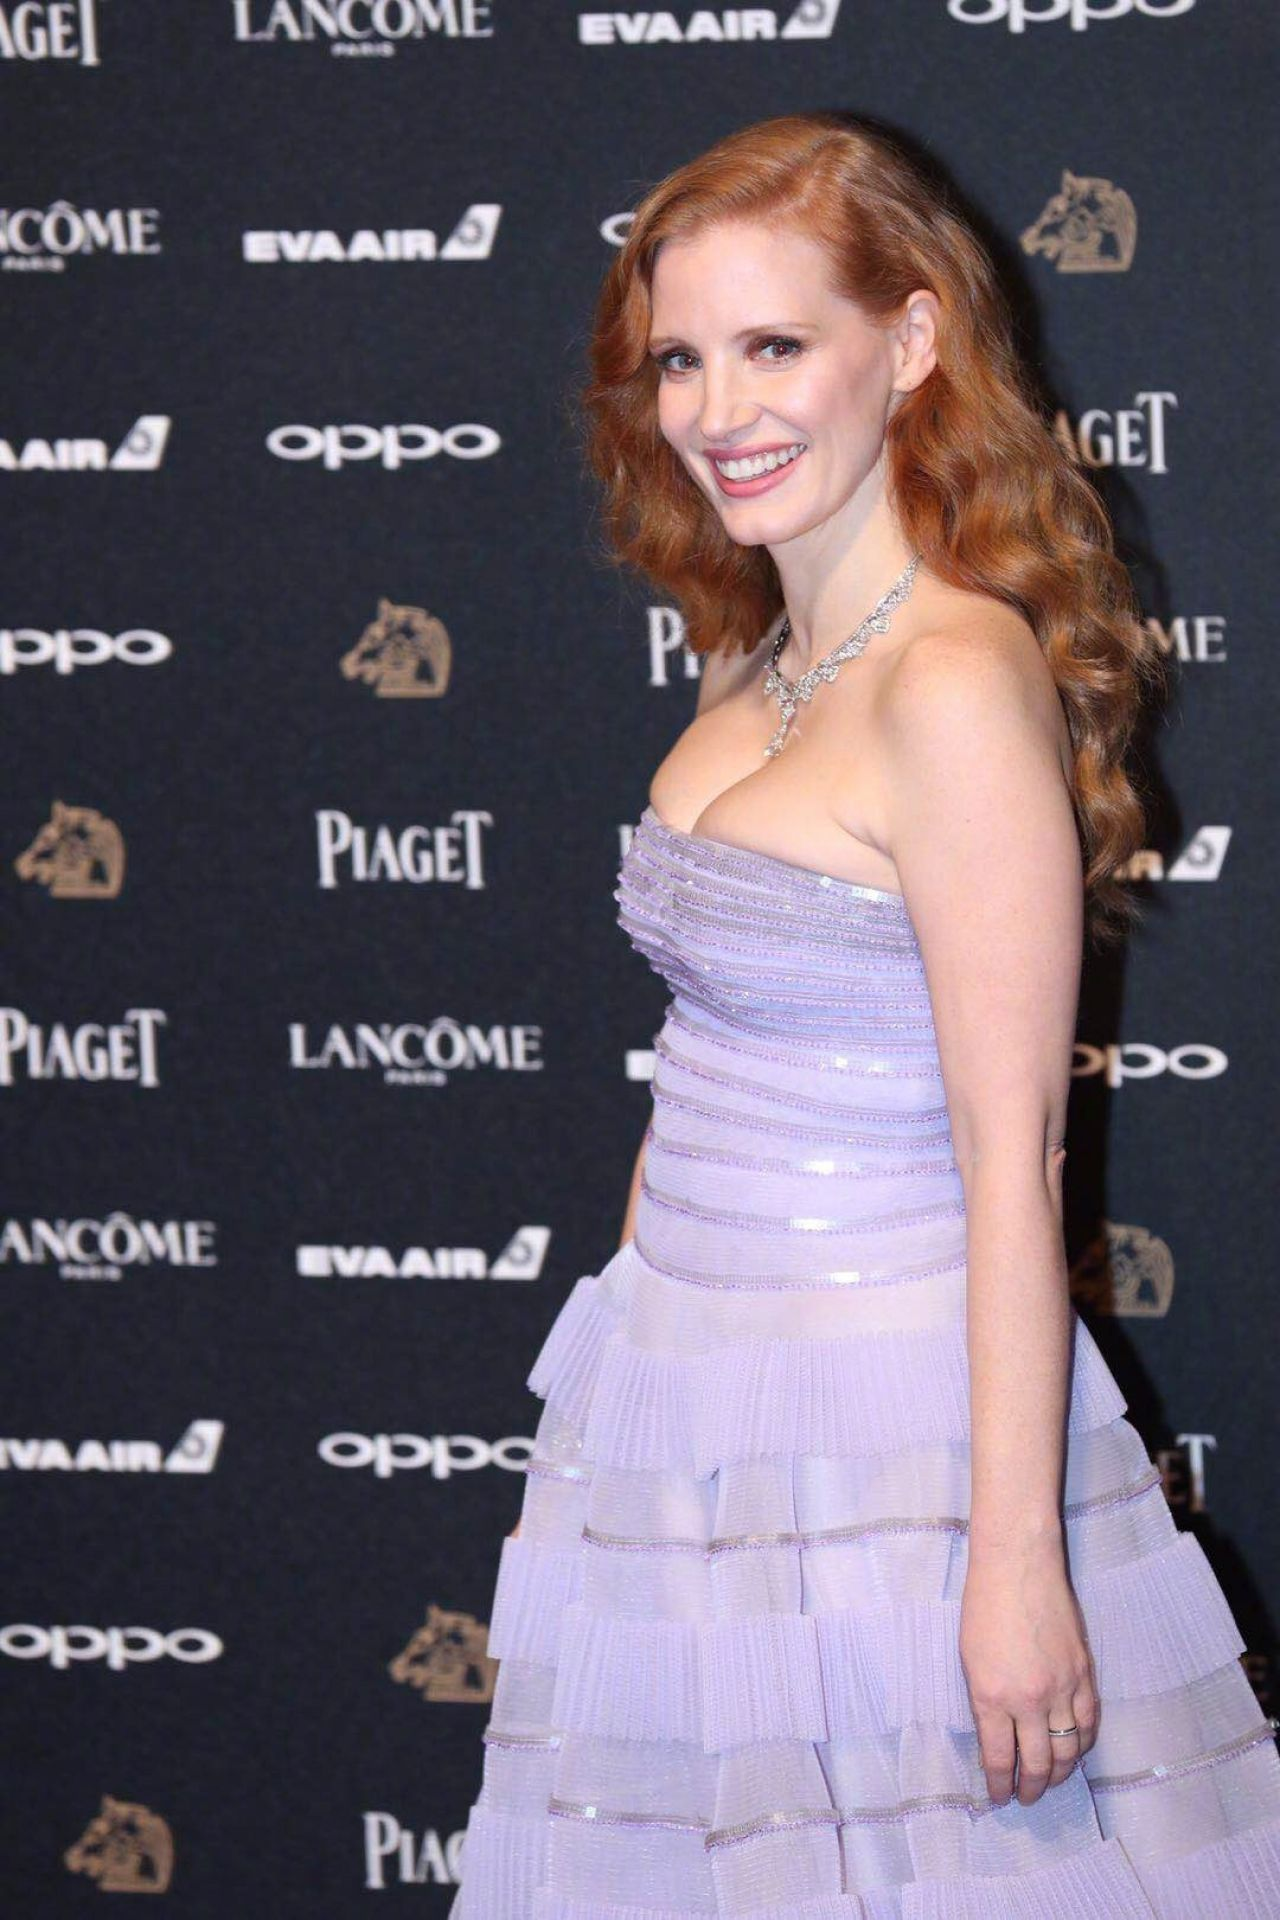 http://celebmafia.com/wp-content/uploads/2017/11/jessica-chastain-golden-horse-awards-2017-in-taipei-0.jpg